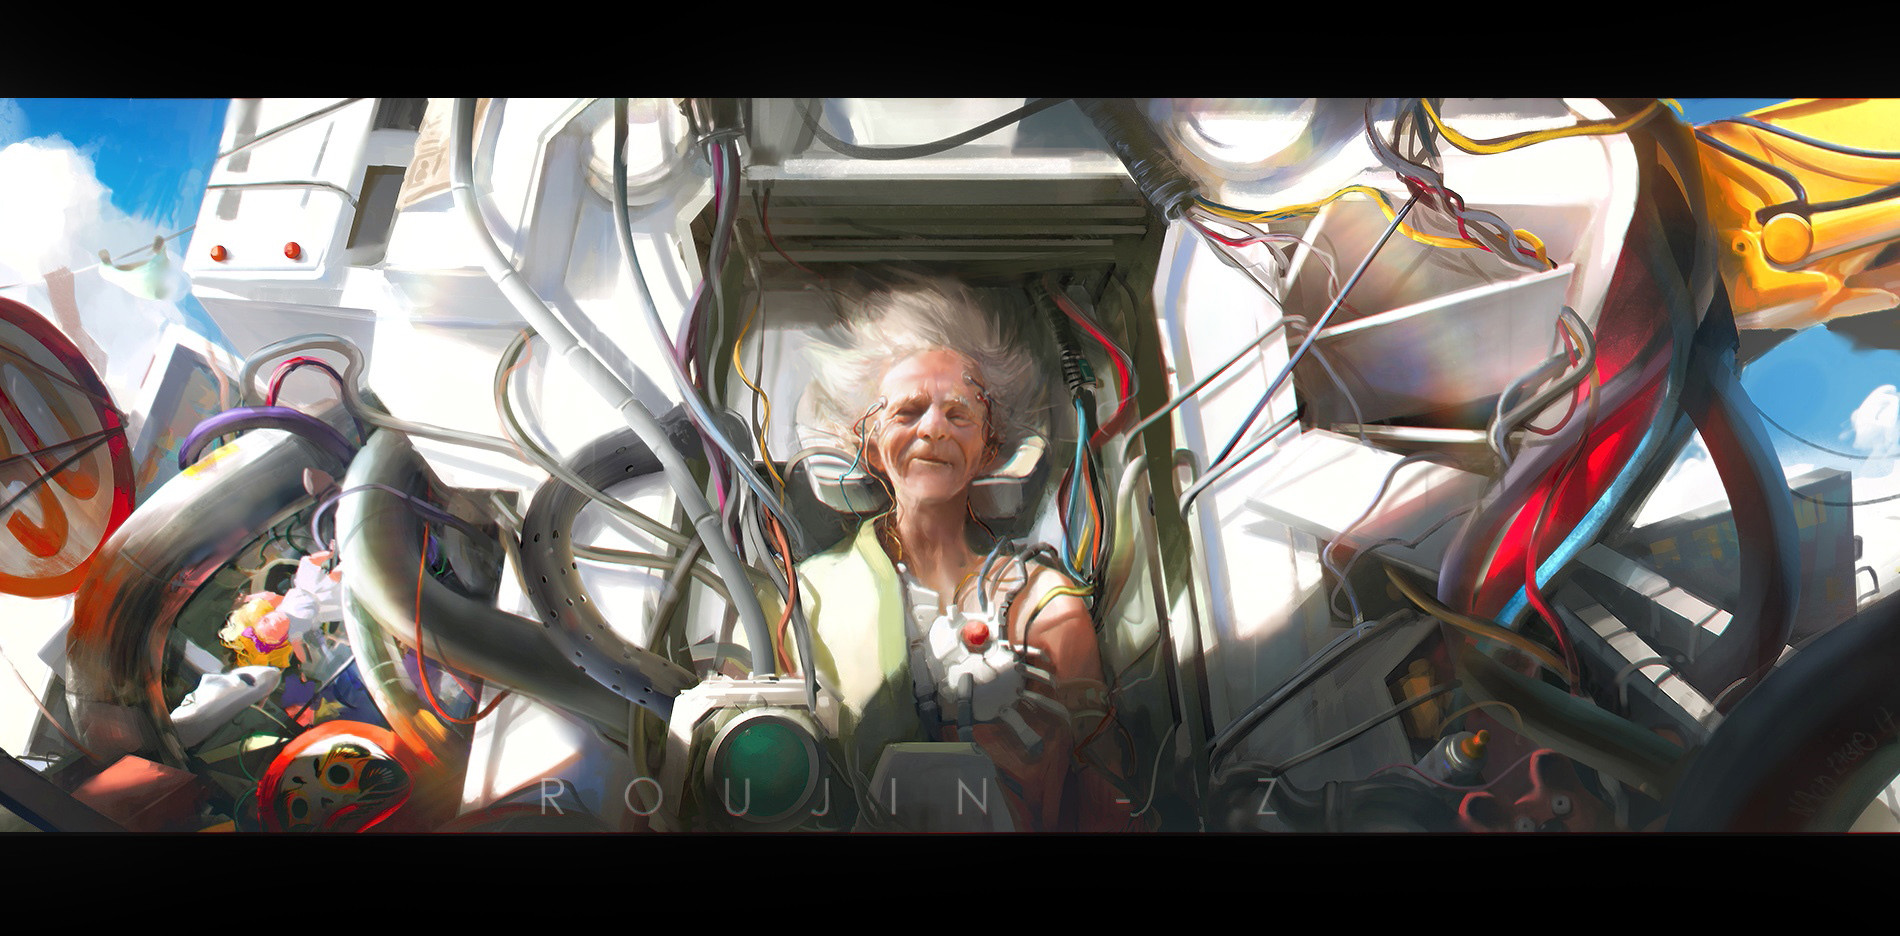 Nacho Yague Digital Painting Concept art Old man Roujin Personnal Work